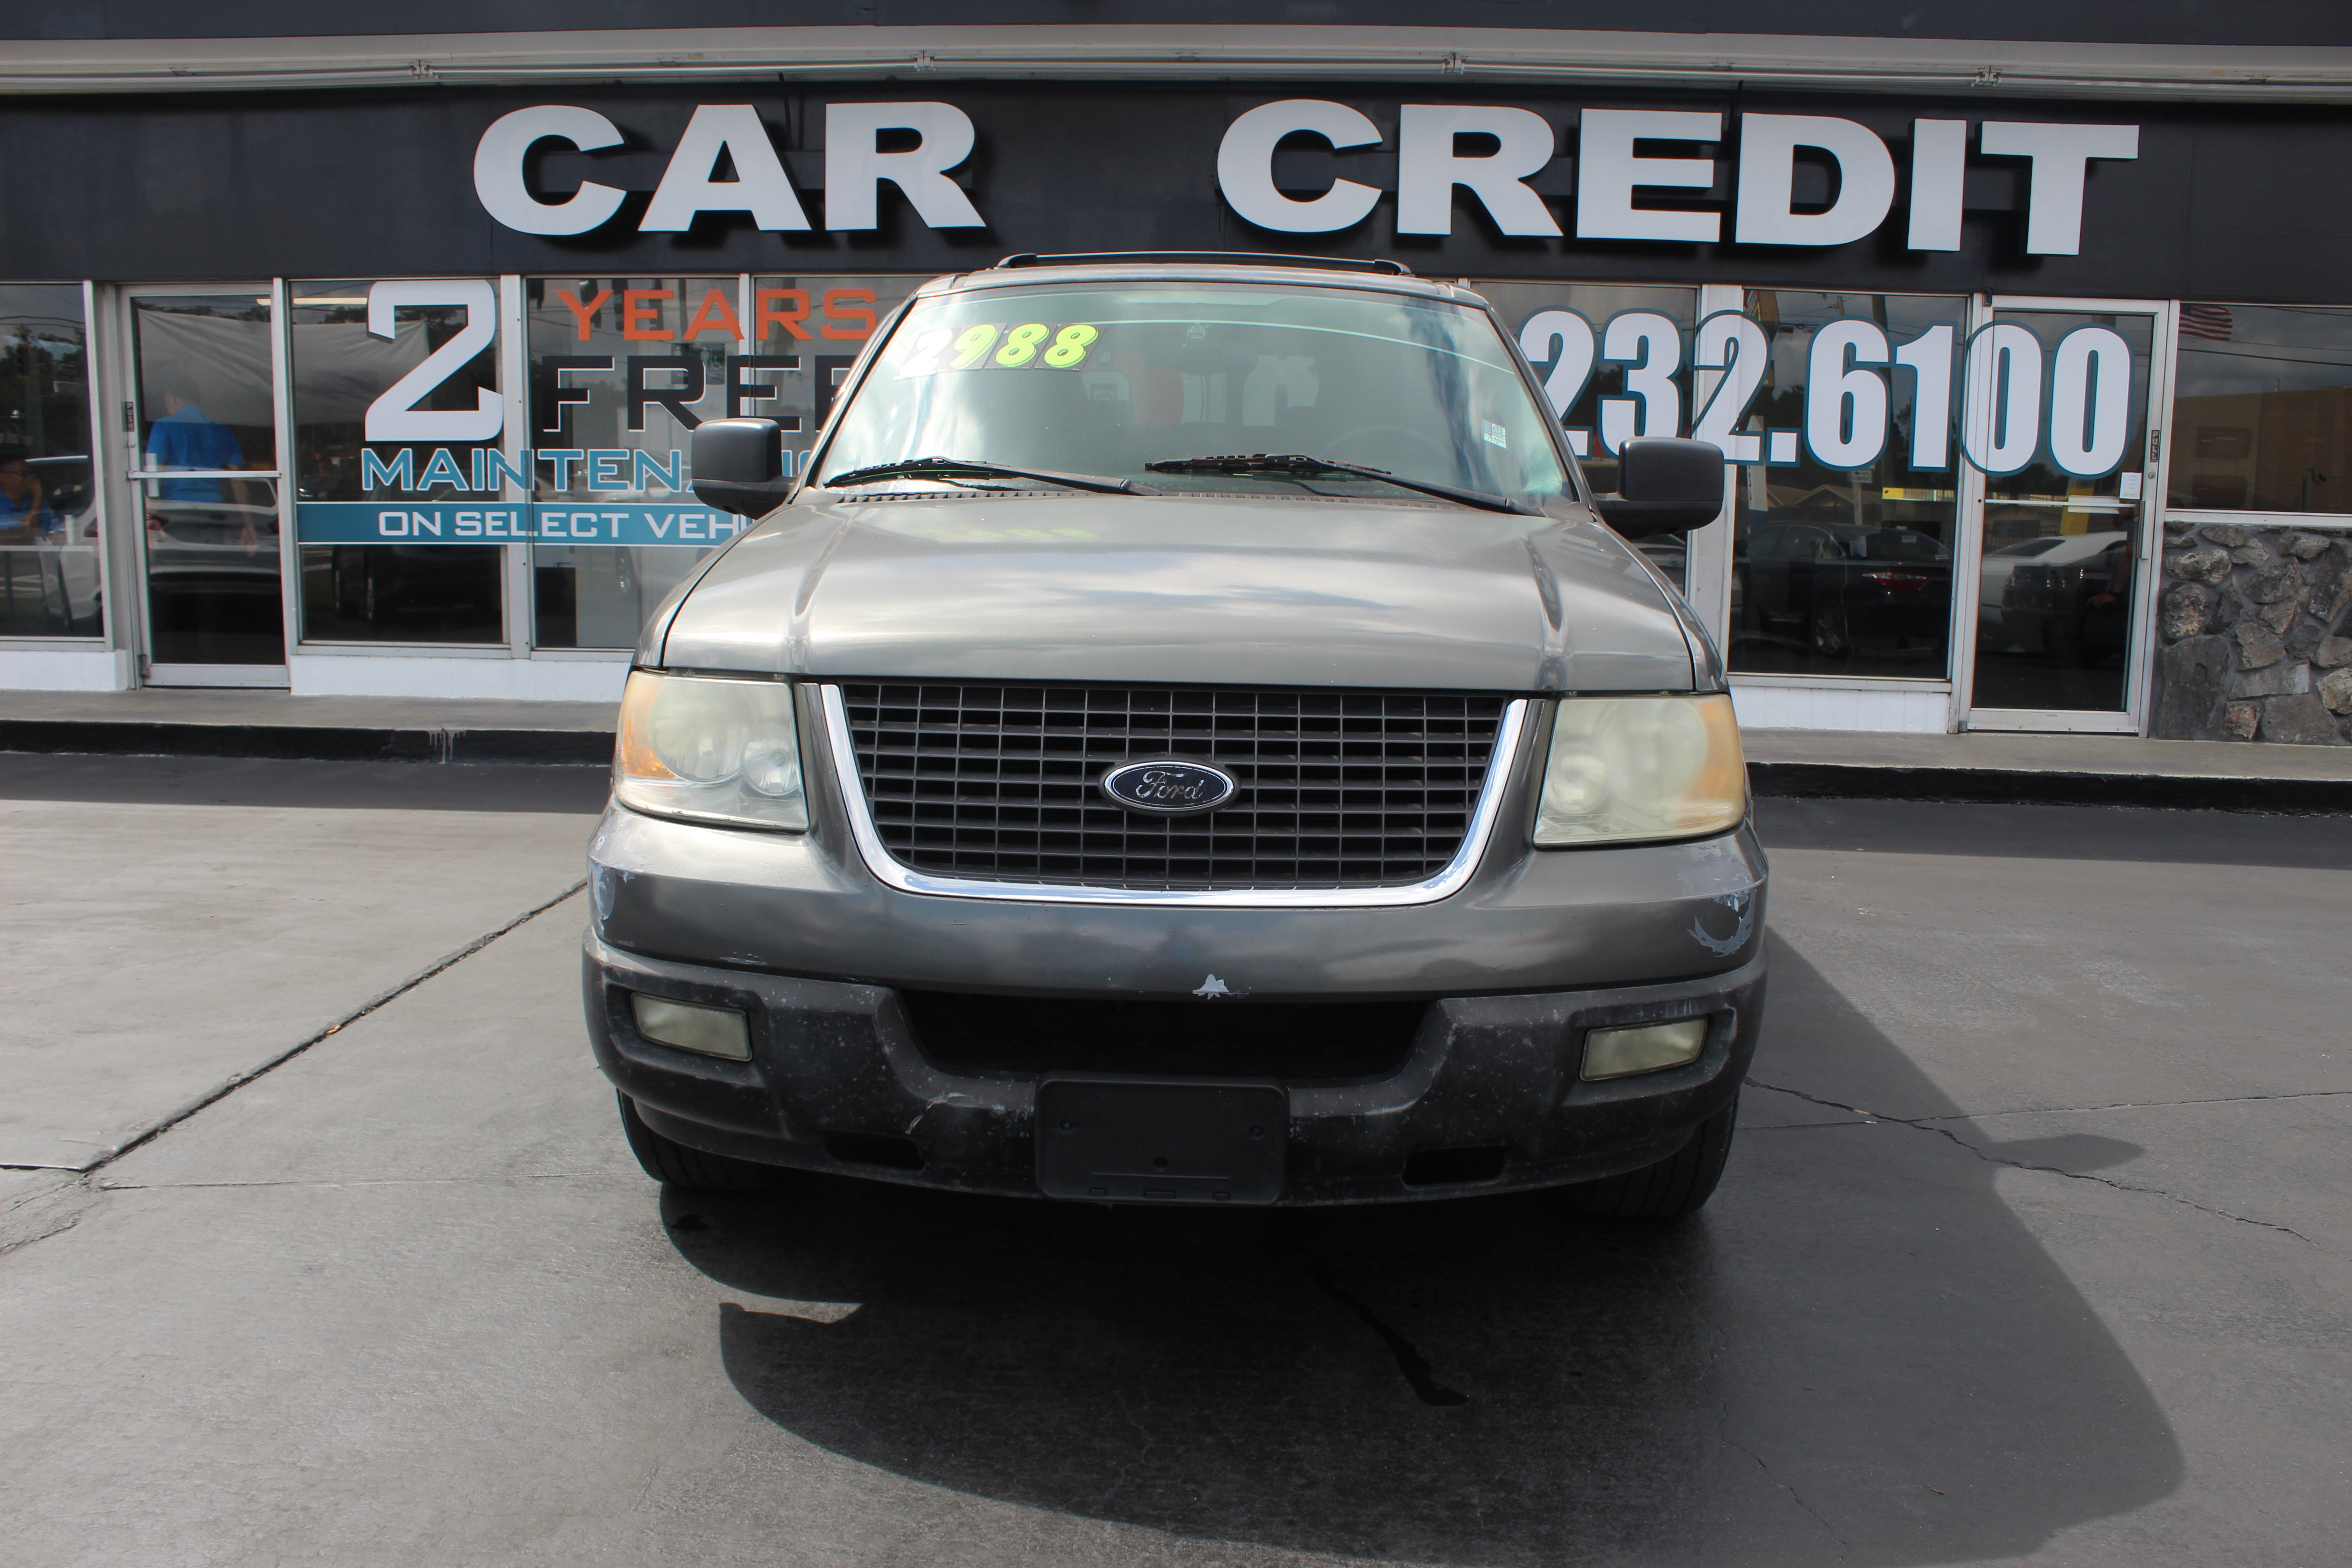 Pre-Owned 2003 Ford Expedition XLT Value